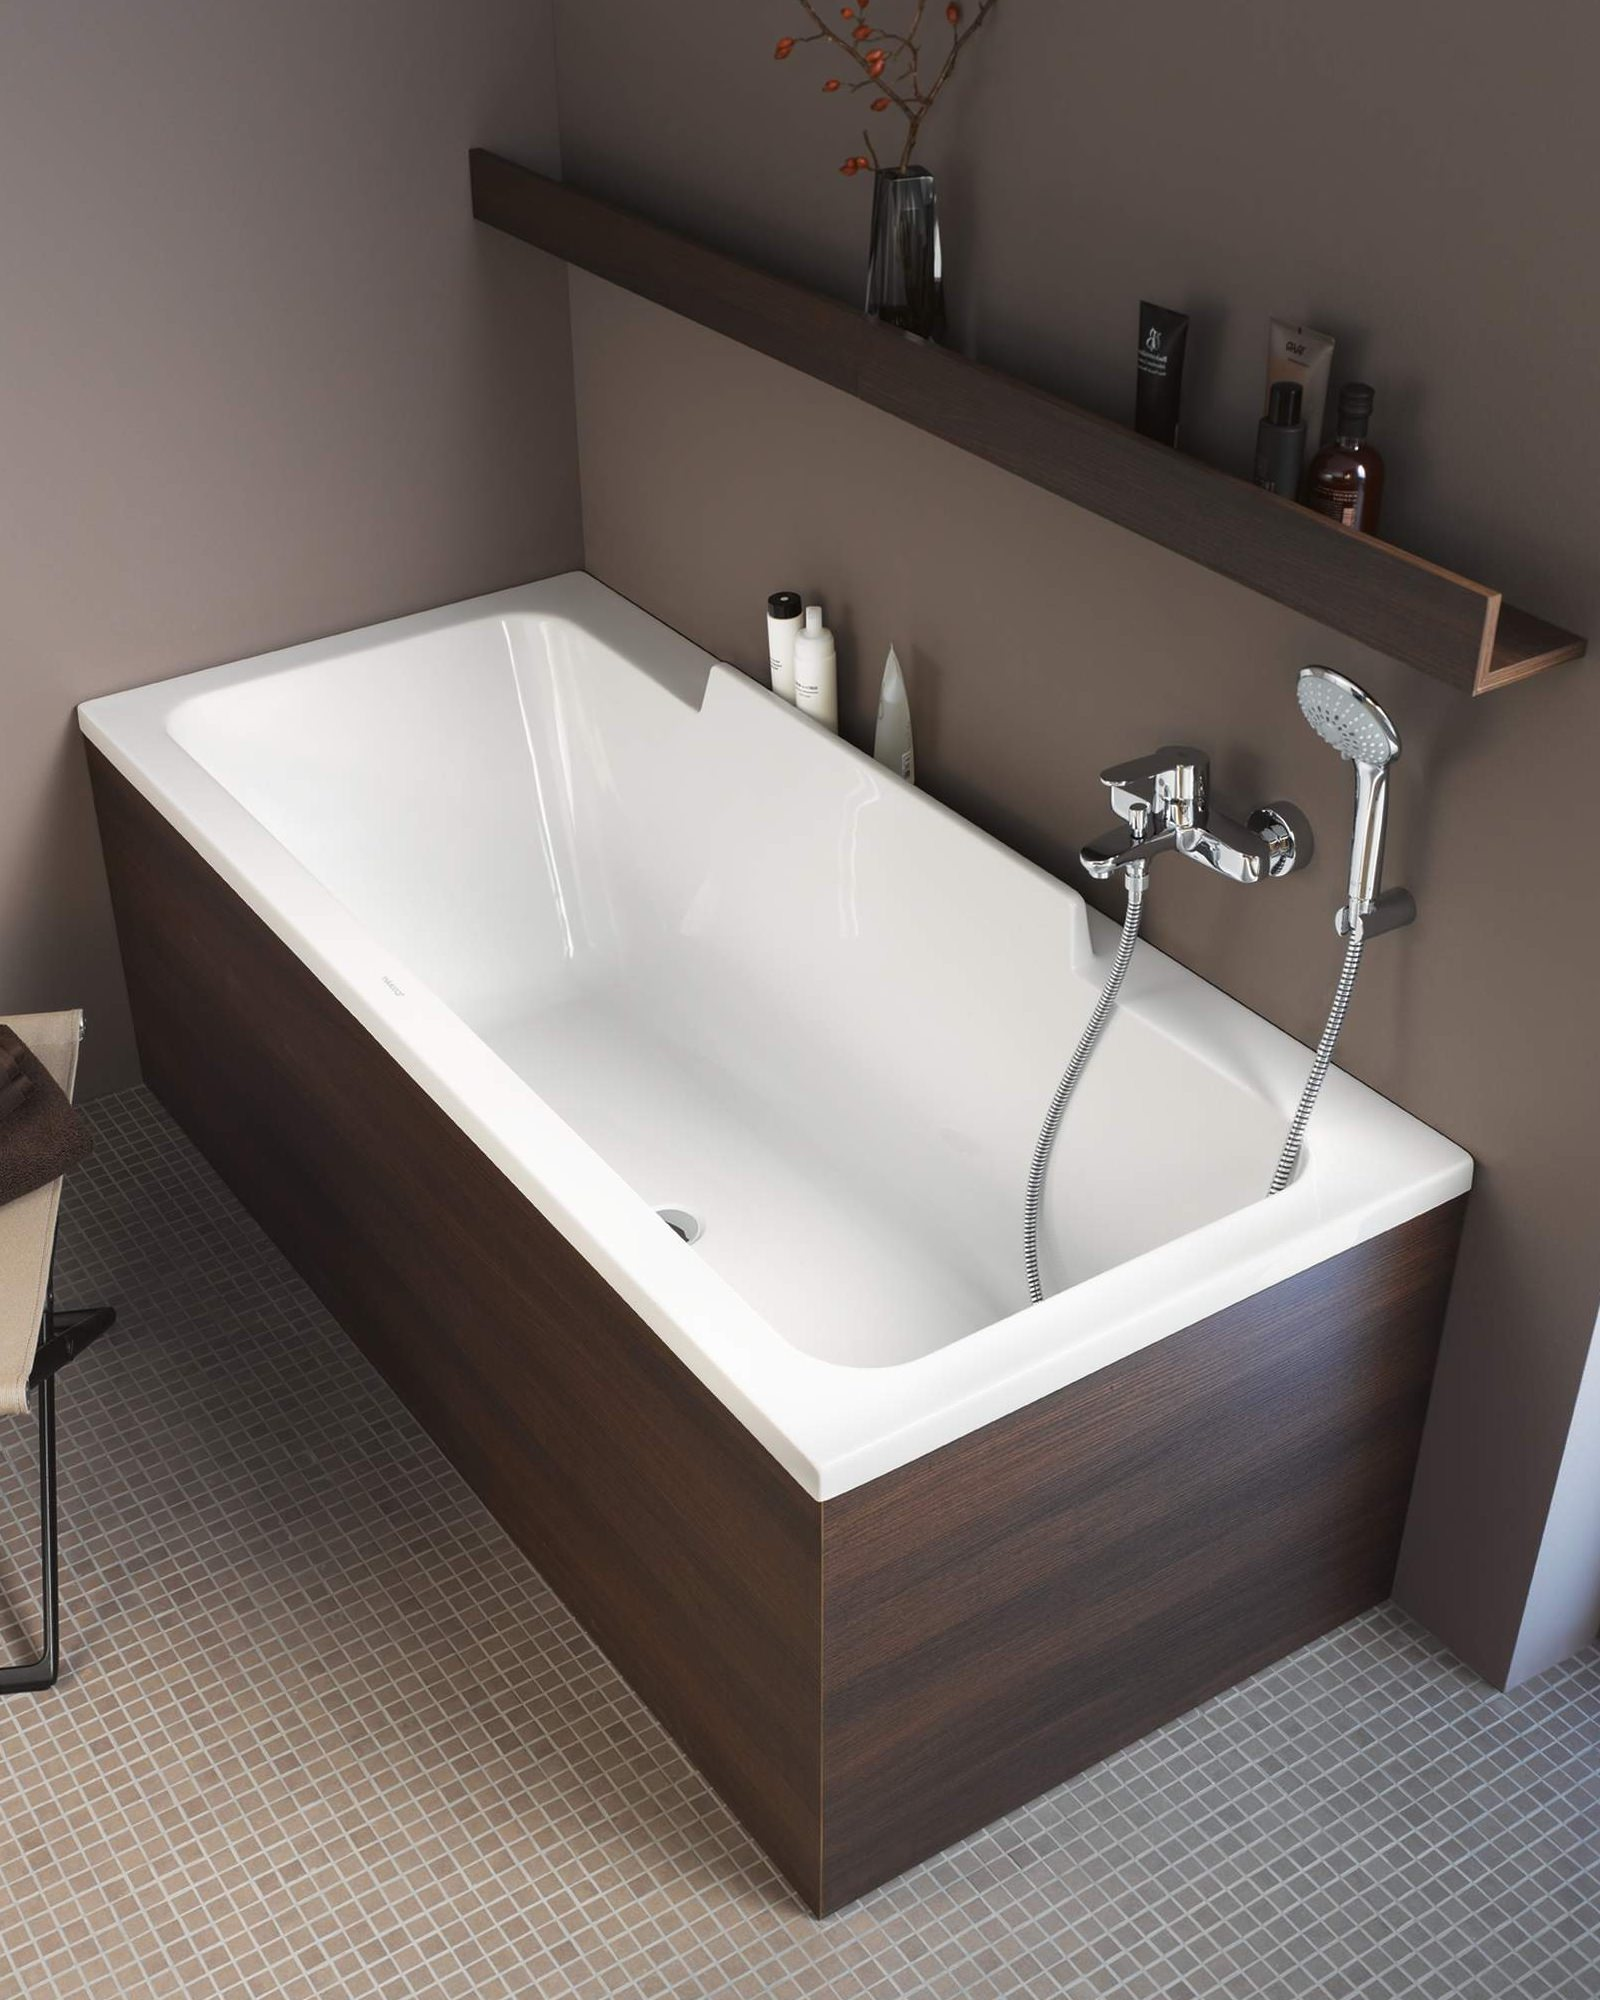 duravit durastyle 1600 x 700mm bath with left slope and support frame